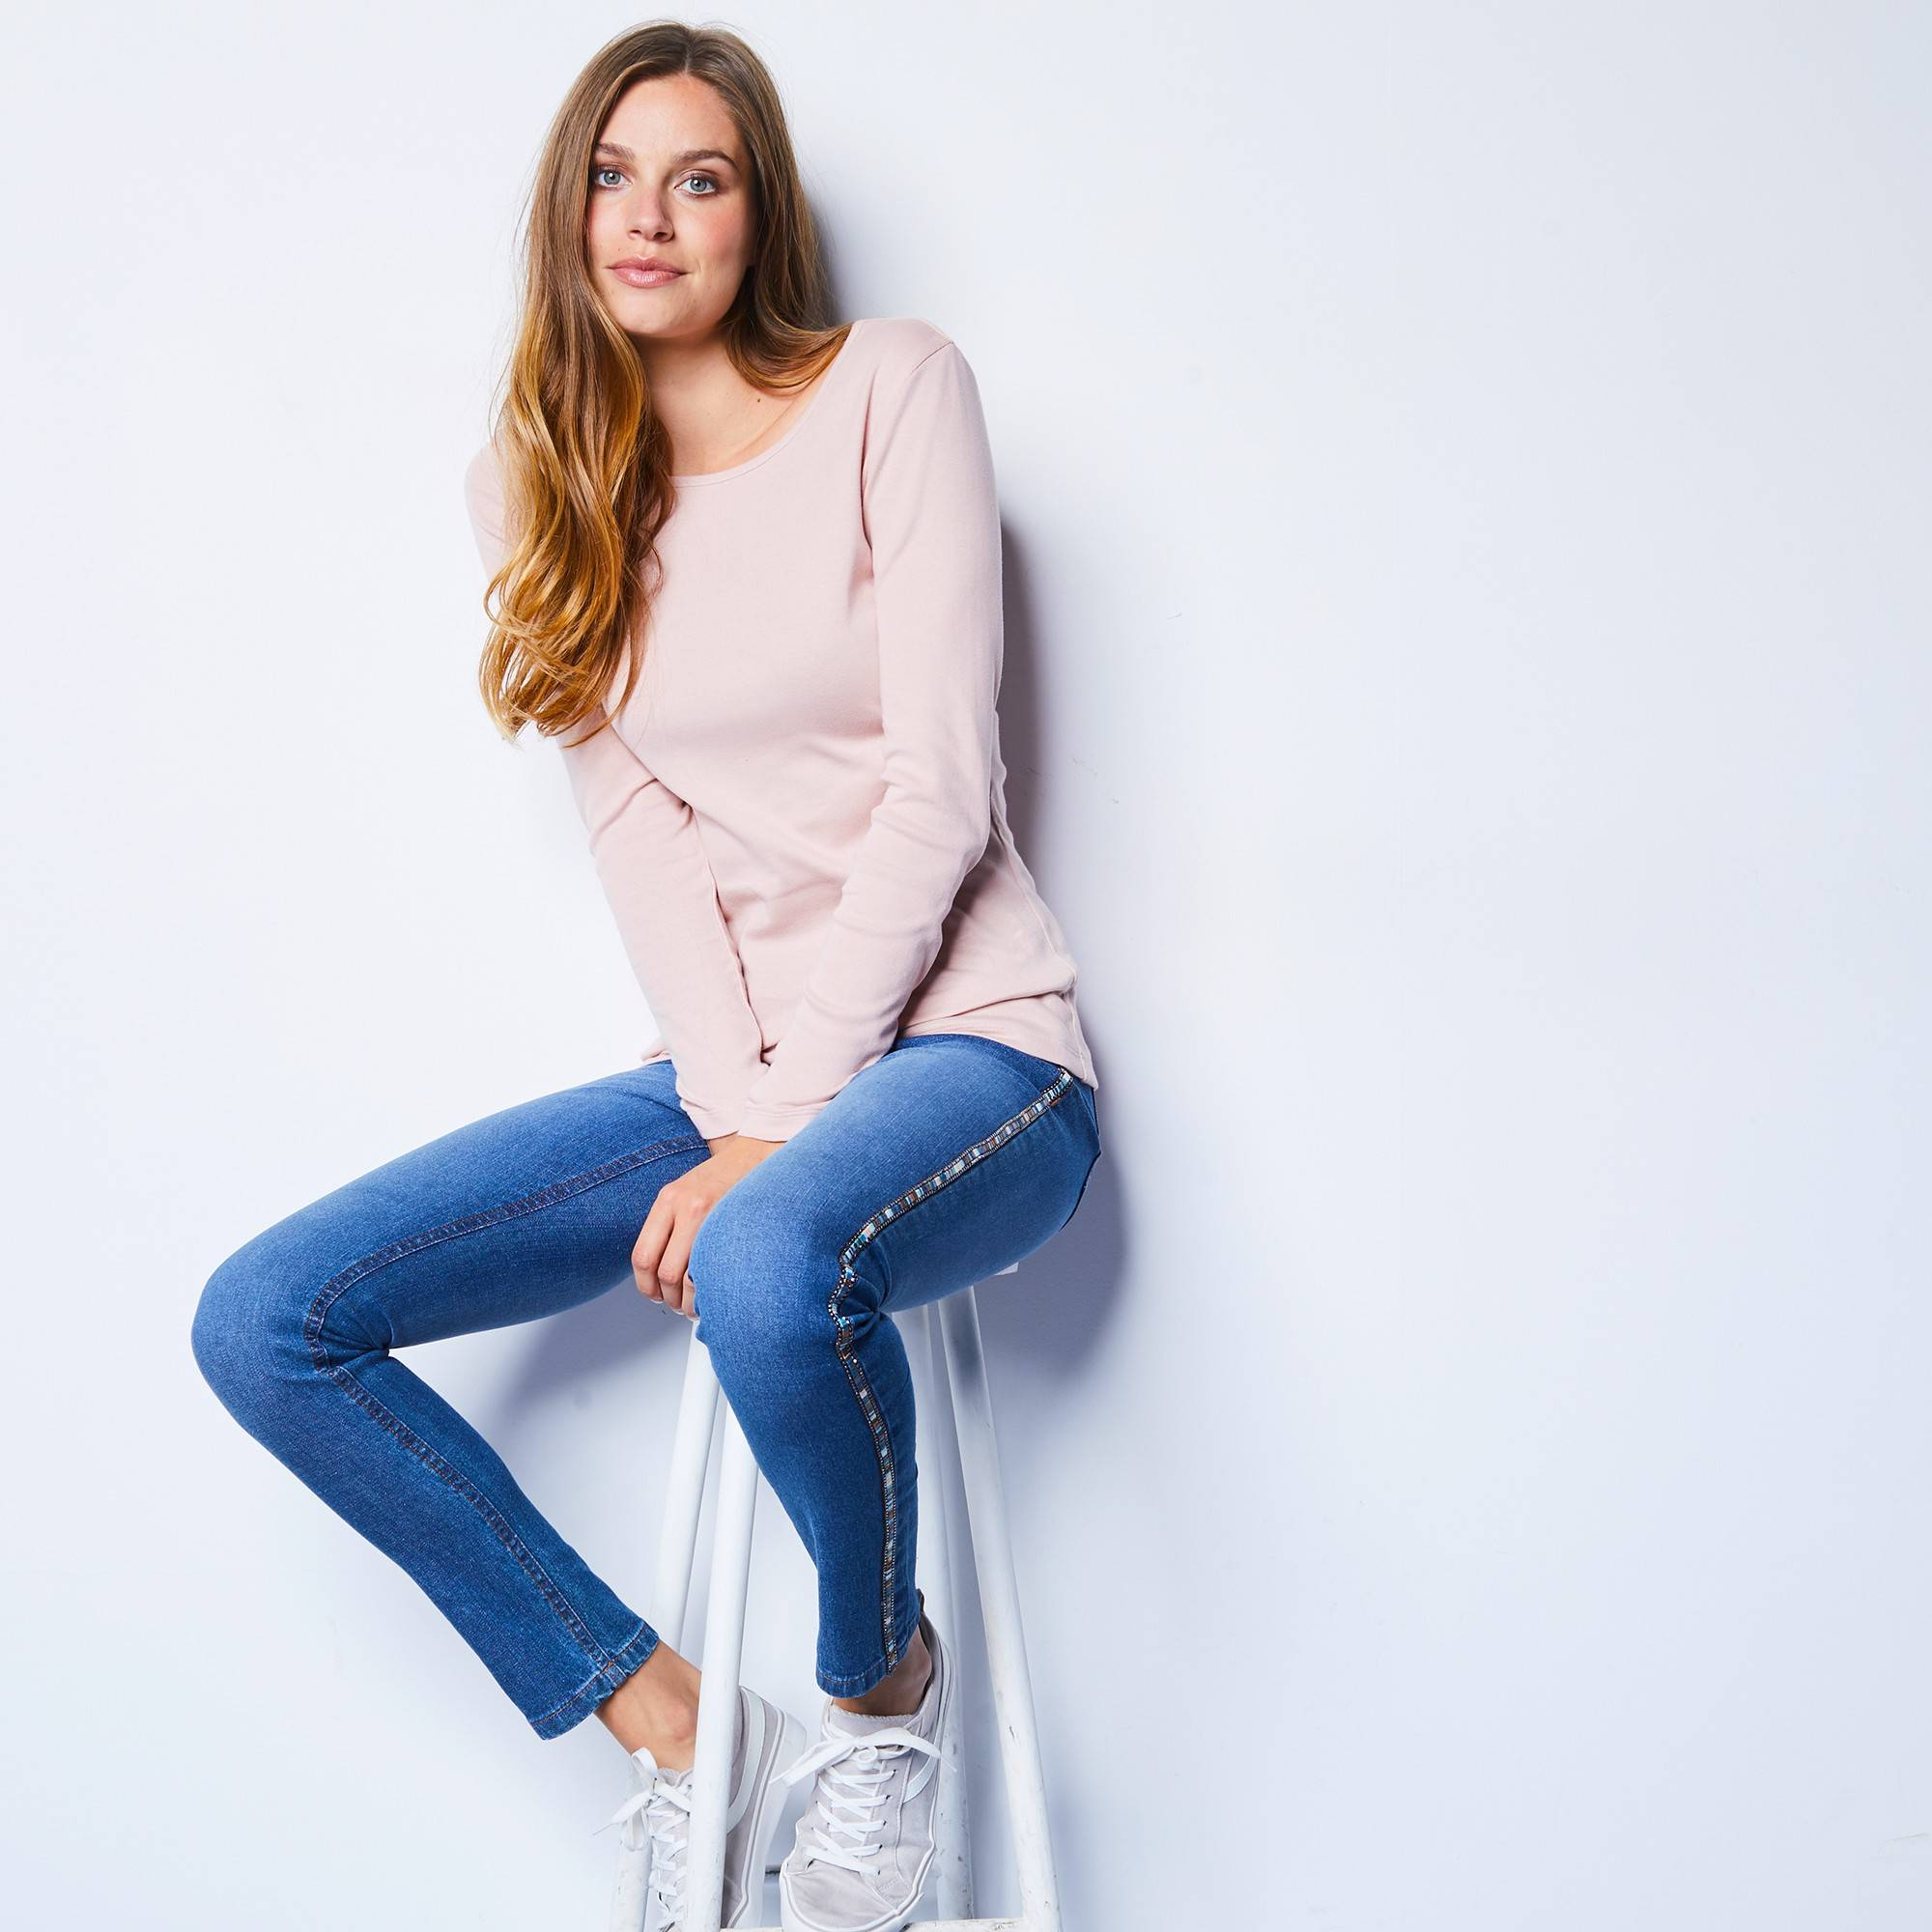 Tee-shirt manches longues - rose poudré - Rose - Taille : 50 - Blancheporte